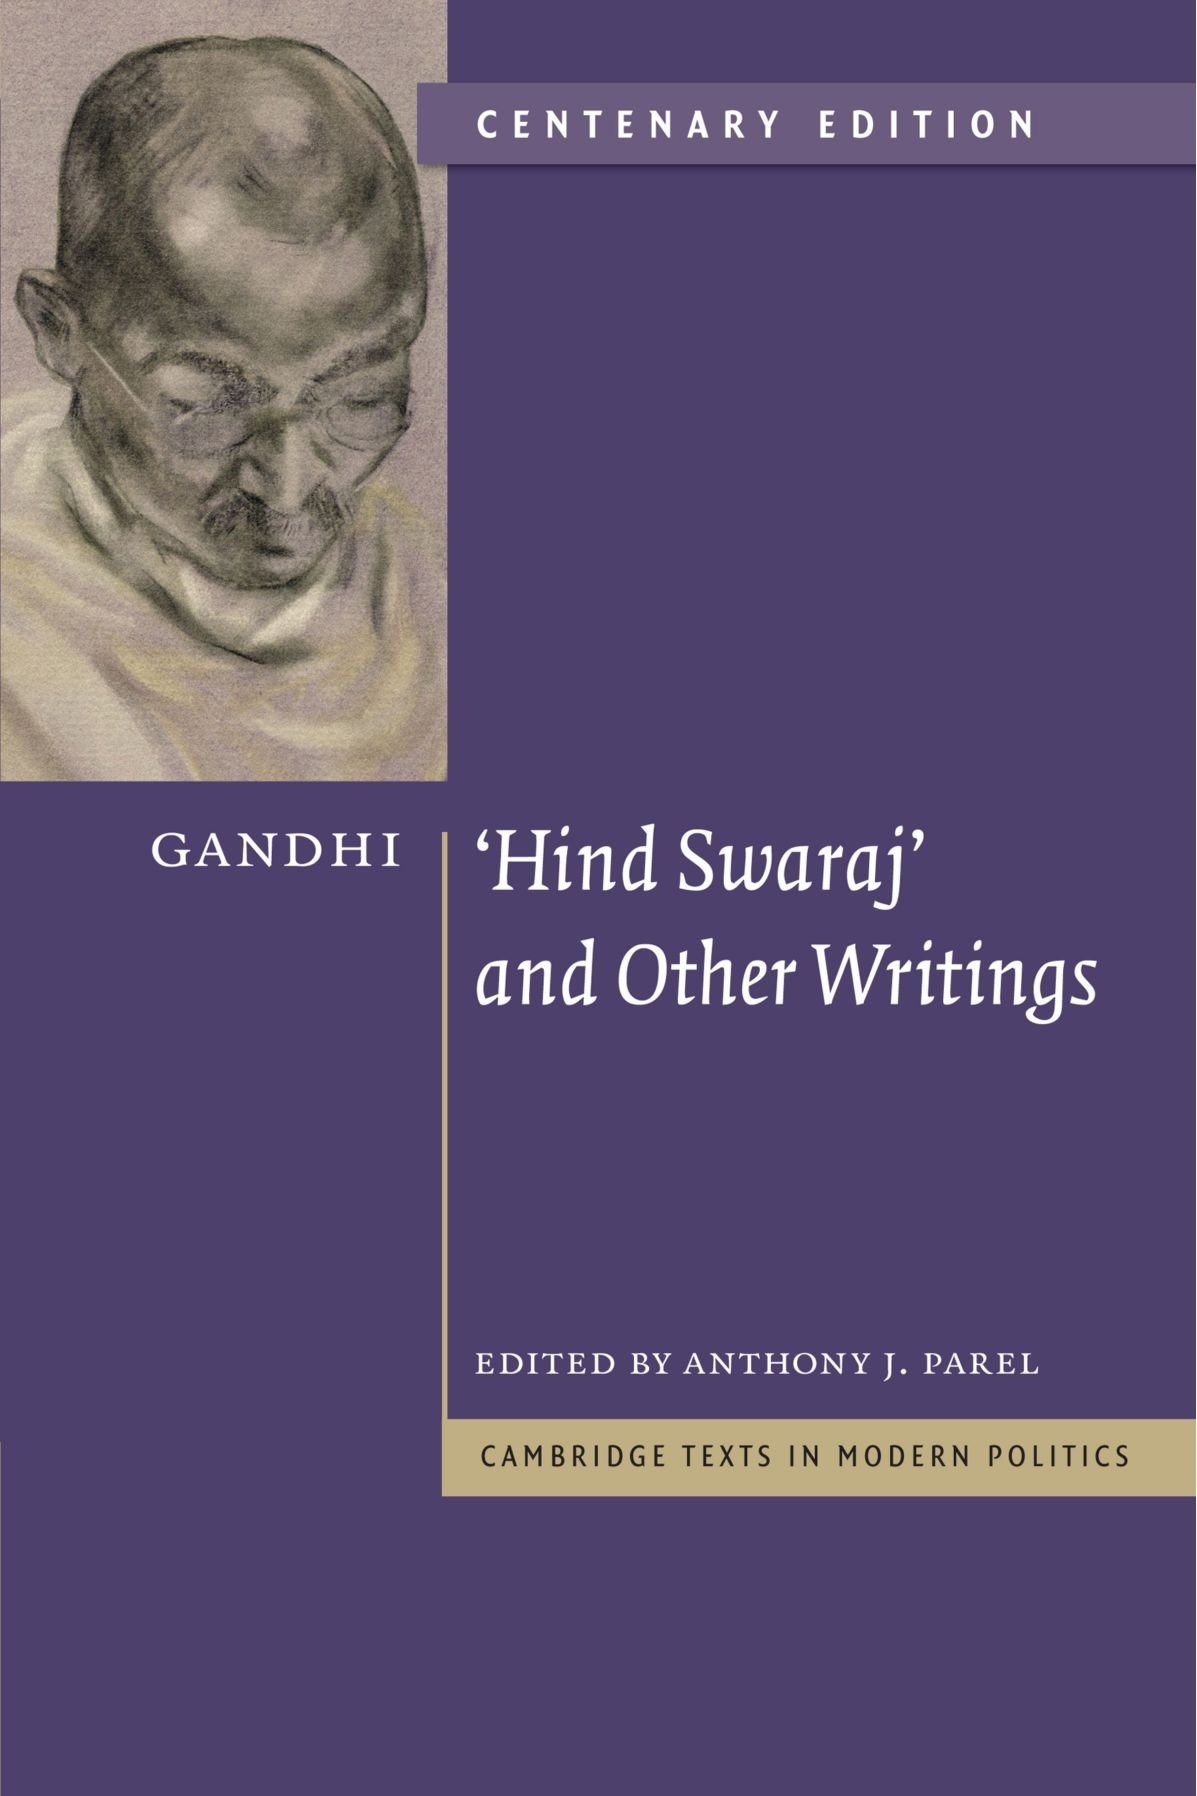 Gandhi: 'Hind Swaraj' and Other Writings Centenary Edition (Cambridge Texts in Modern Politics)